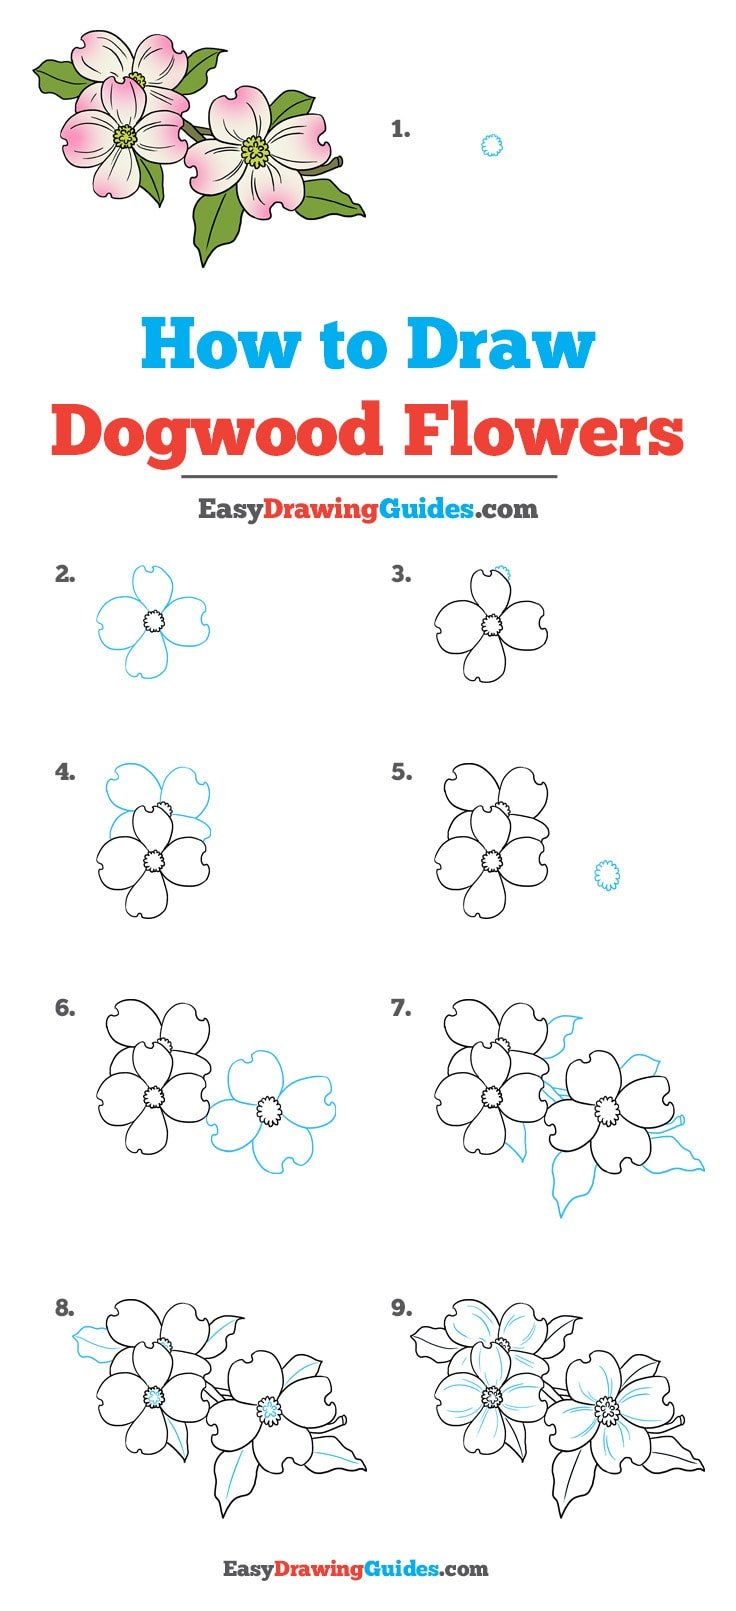 How to draw dogwood flowers: Step by step drawing tutorial